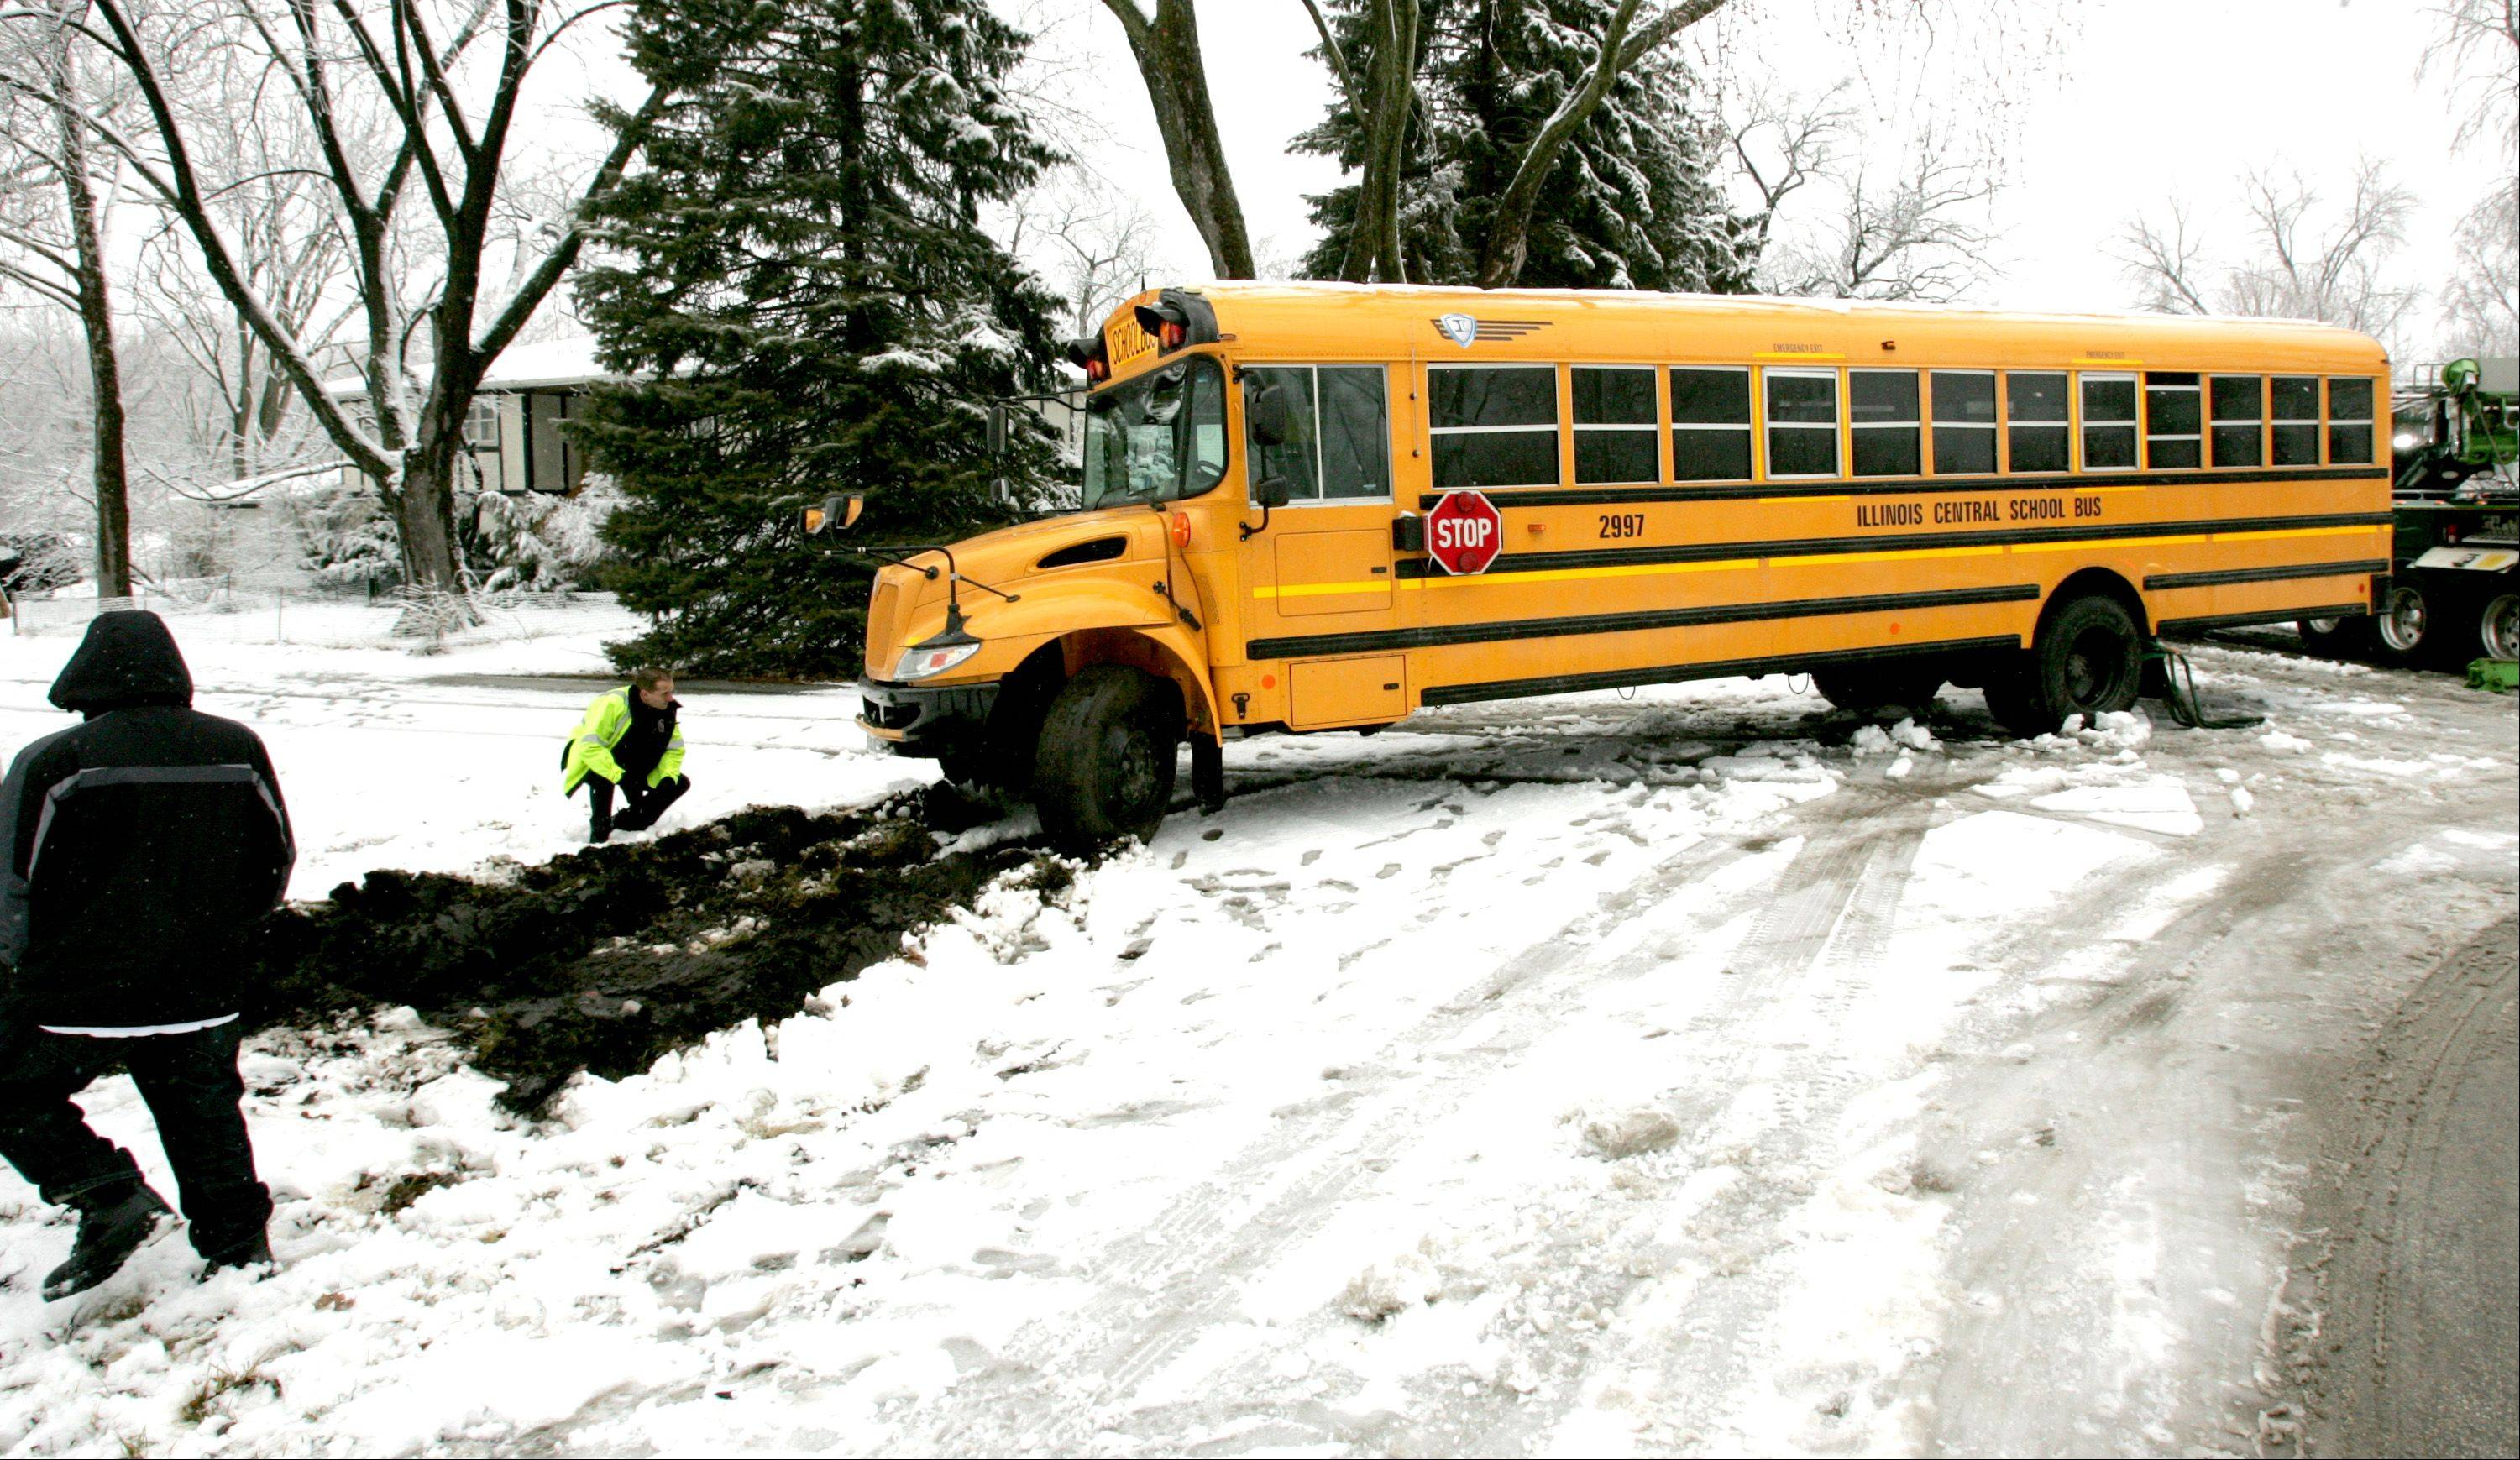 A tow truck pulls a school bus back on the road Friday after it slid off an icy Lisle street and into a resident's yard. None of the roughly two dozen students aboard were injured.